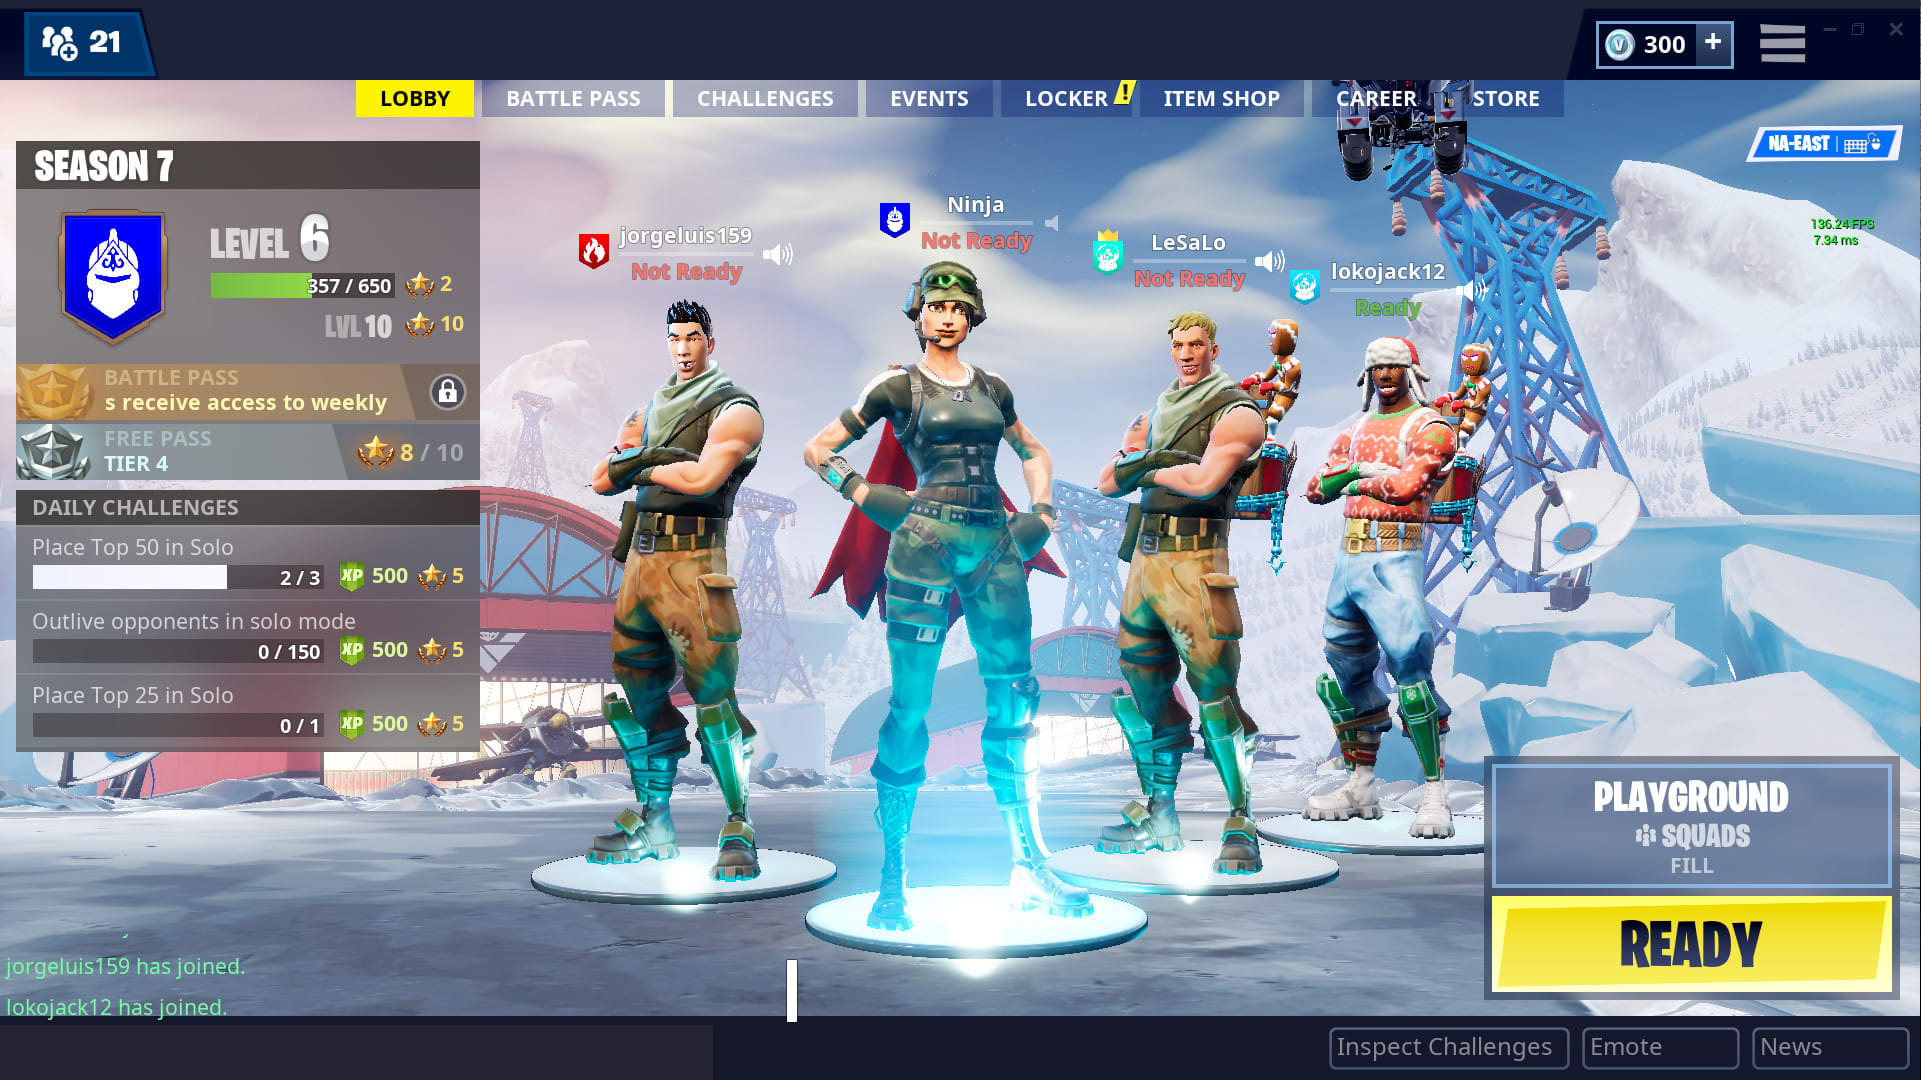 Play Fortnite With You As Ninja By Johnmiller644 Here are a few fortnite names that will help you get a good fortnite name for you social media picture or according to your need, check down for the best. play fortnite with you as ninja by